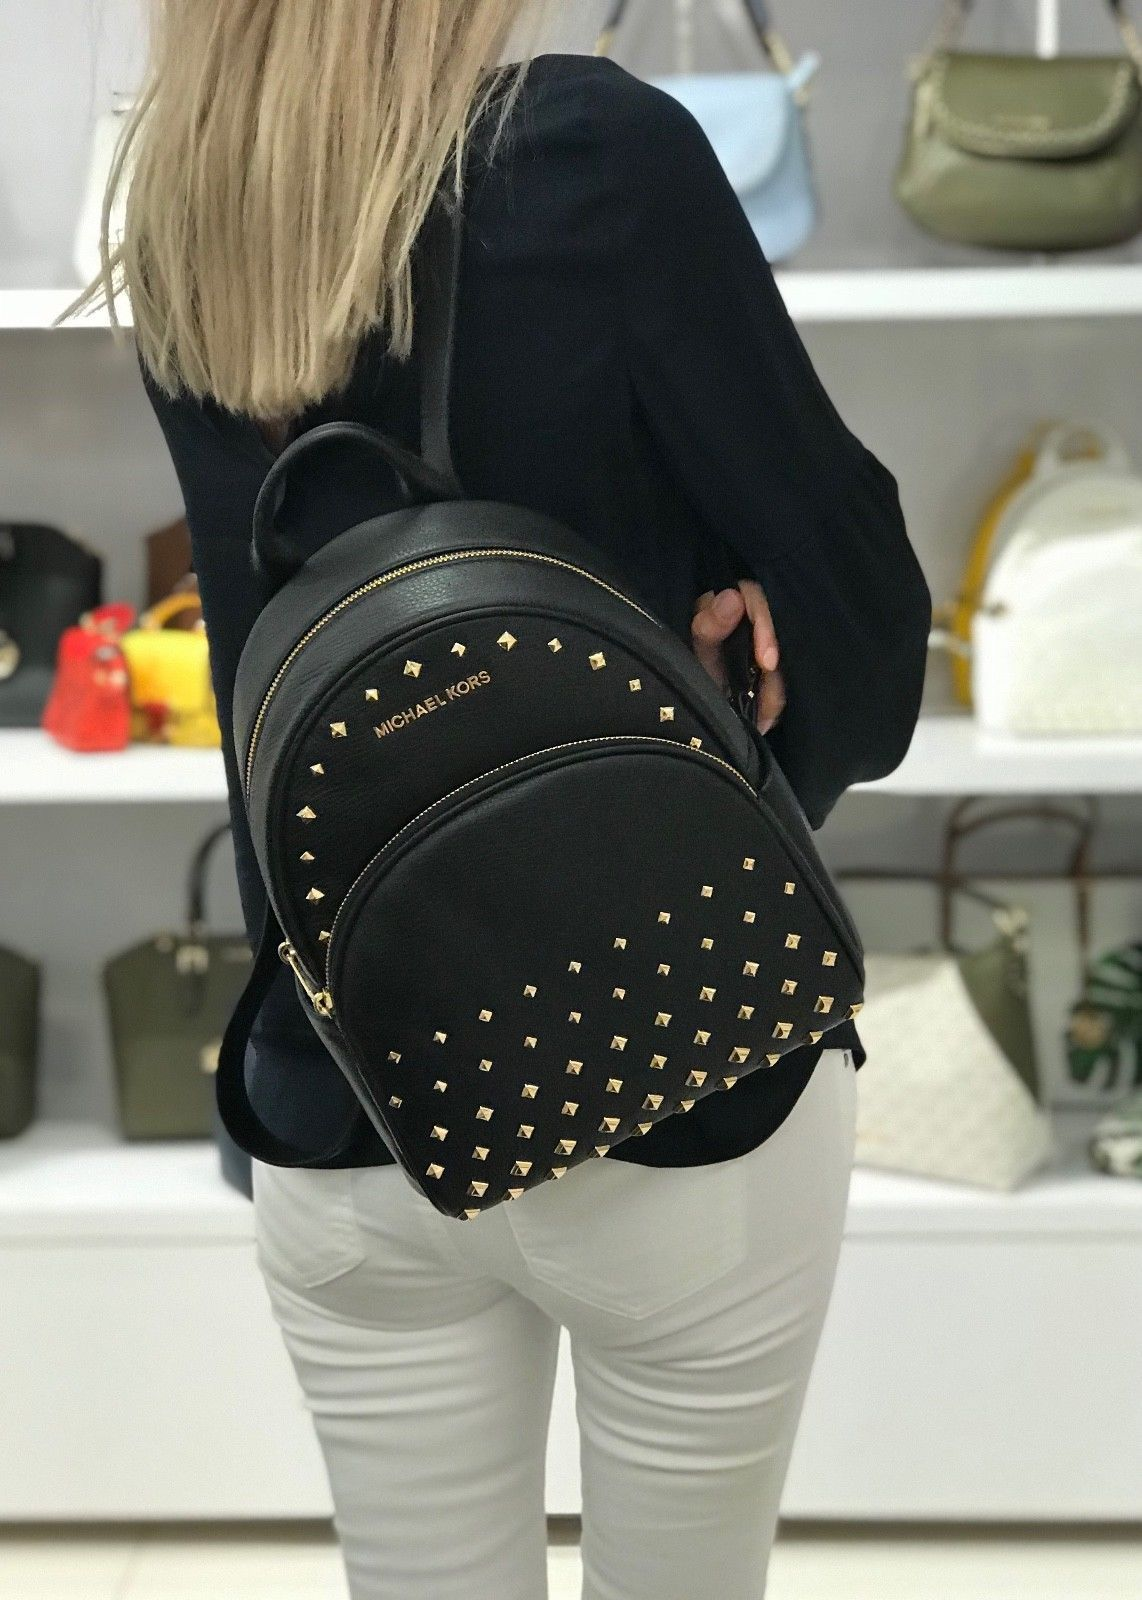 403690935 MICHAEL KORS ABBEY MEDIUM STUDDED BACKPACK LEATHER BLACK | Designer ...